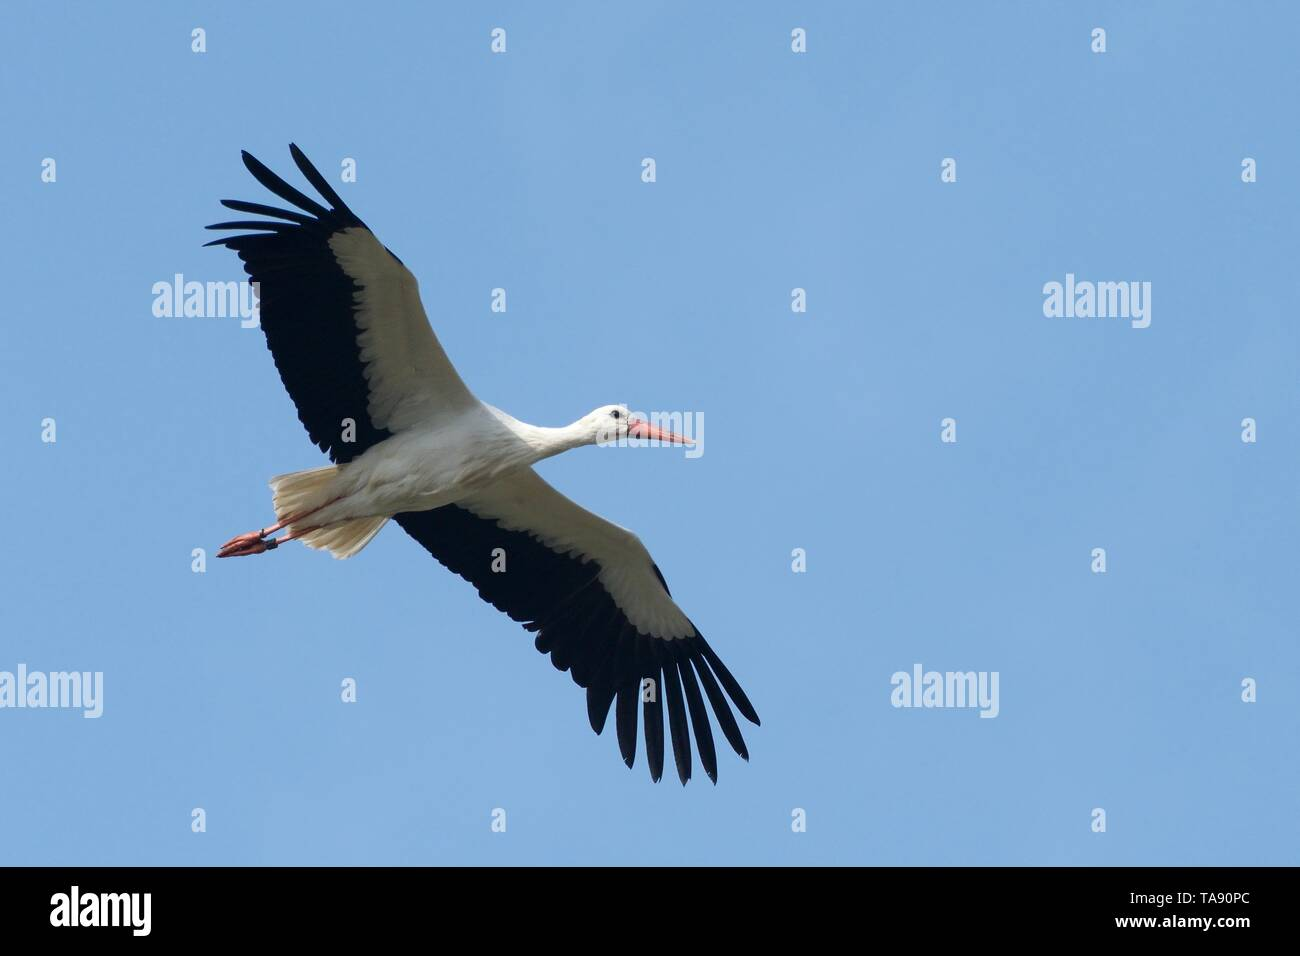 White stork (Ciconia ciconia) in flight against a blue sky over the Knepp estate, Sussex, UK, March. Stock Photo